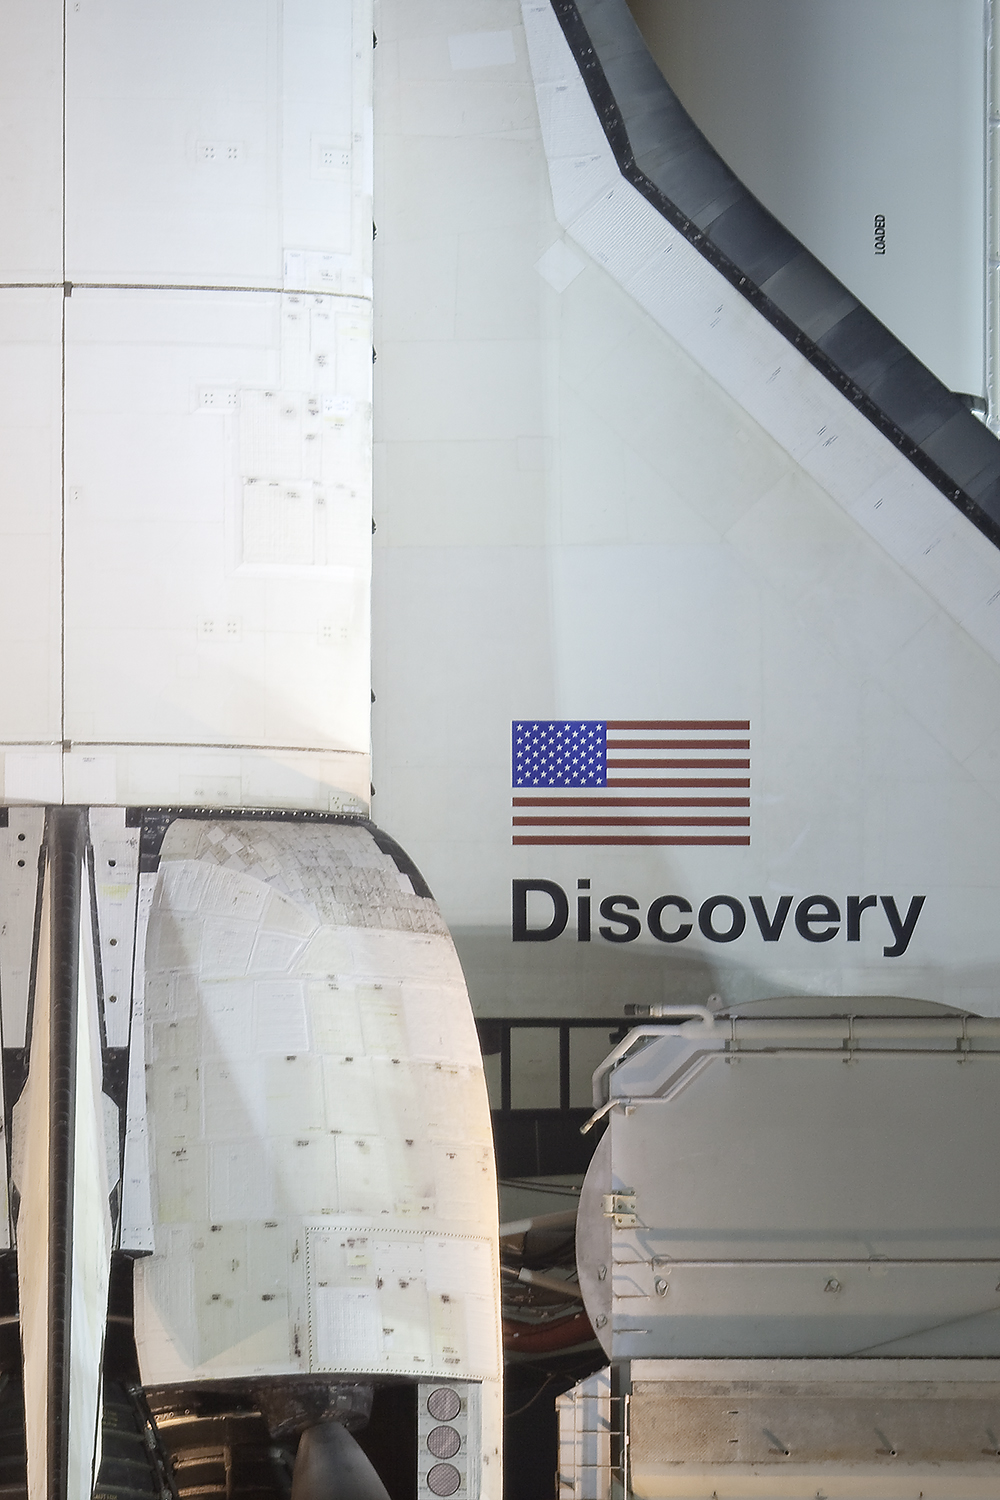 Aft Detail, Space Shuttle Discovery